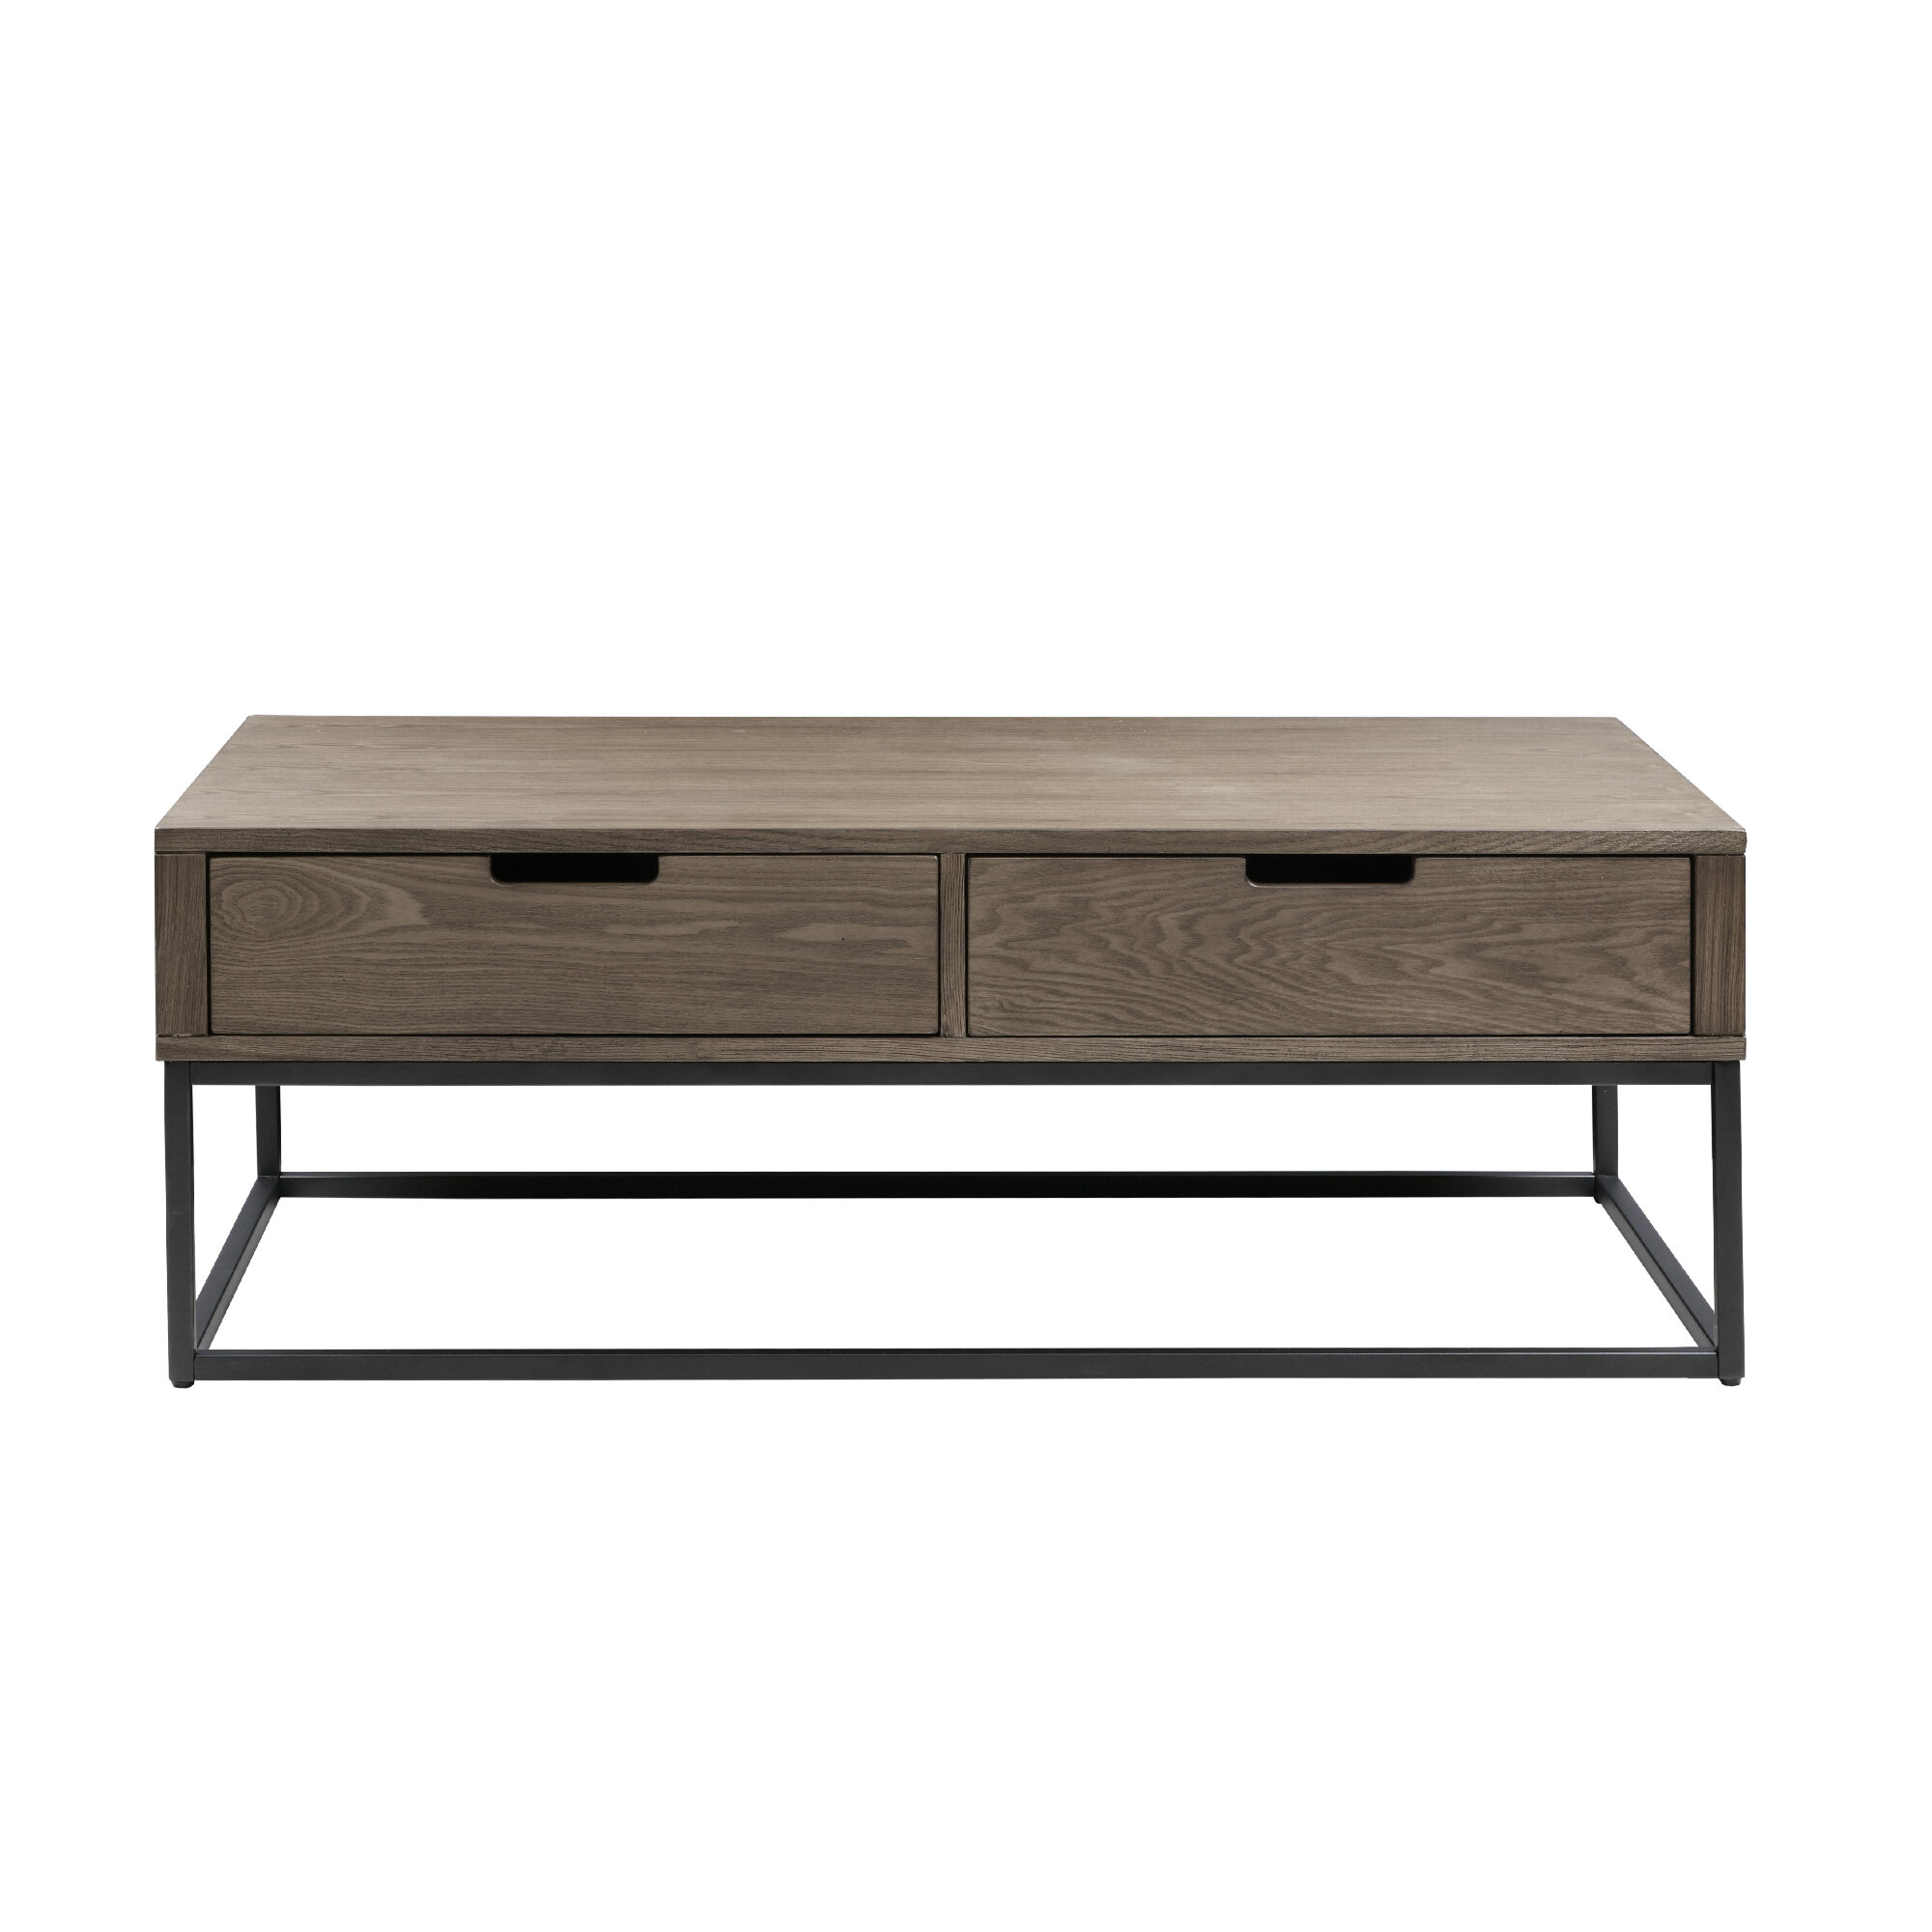 Jerri Coffee Table With Storage Reviews Joss Main